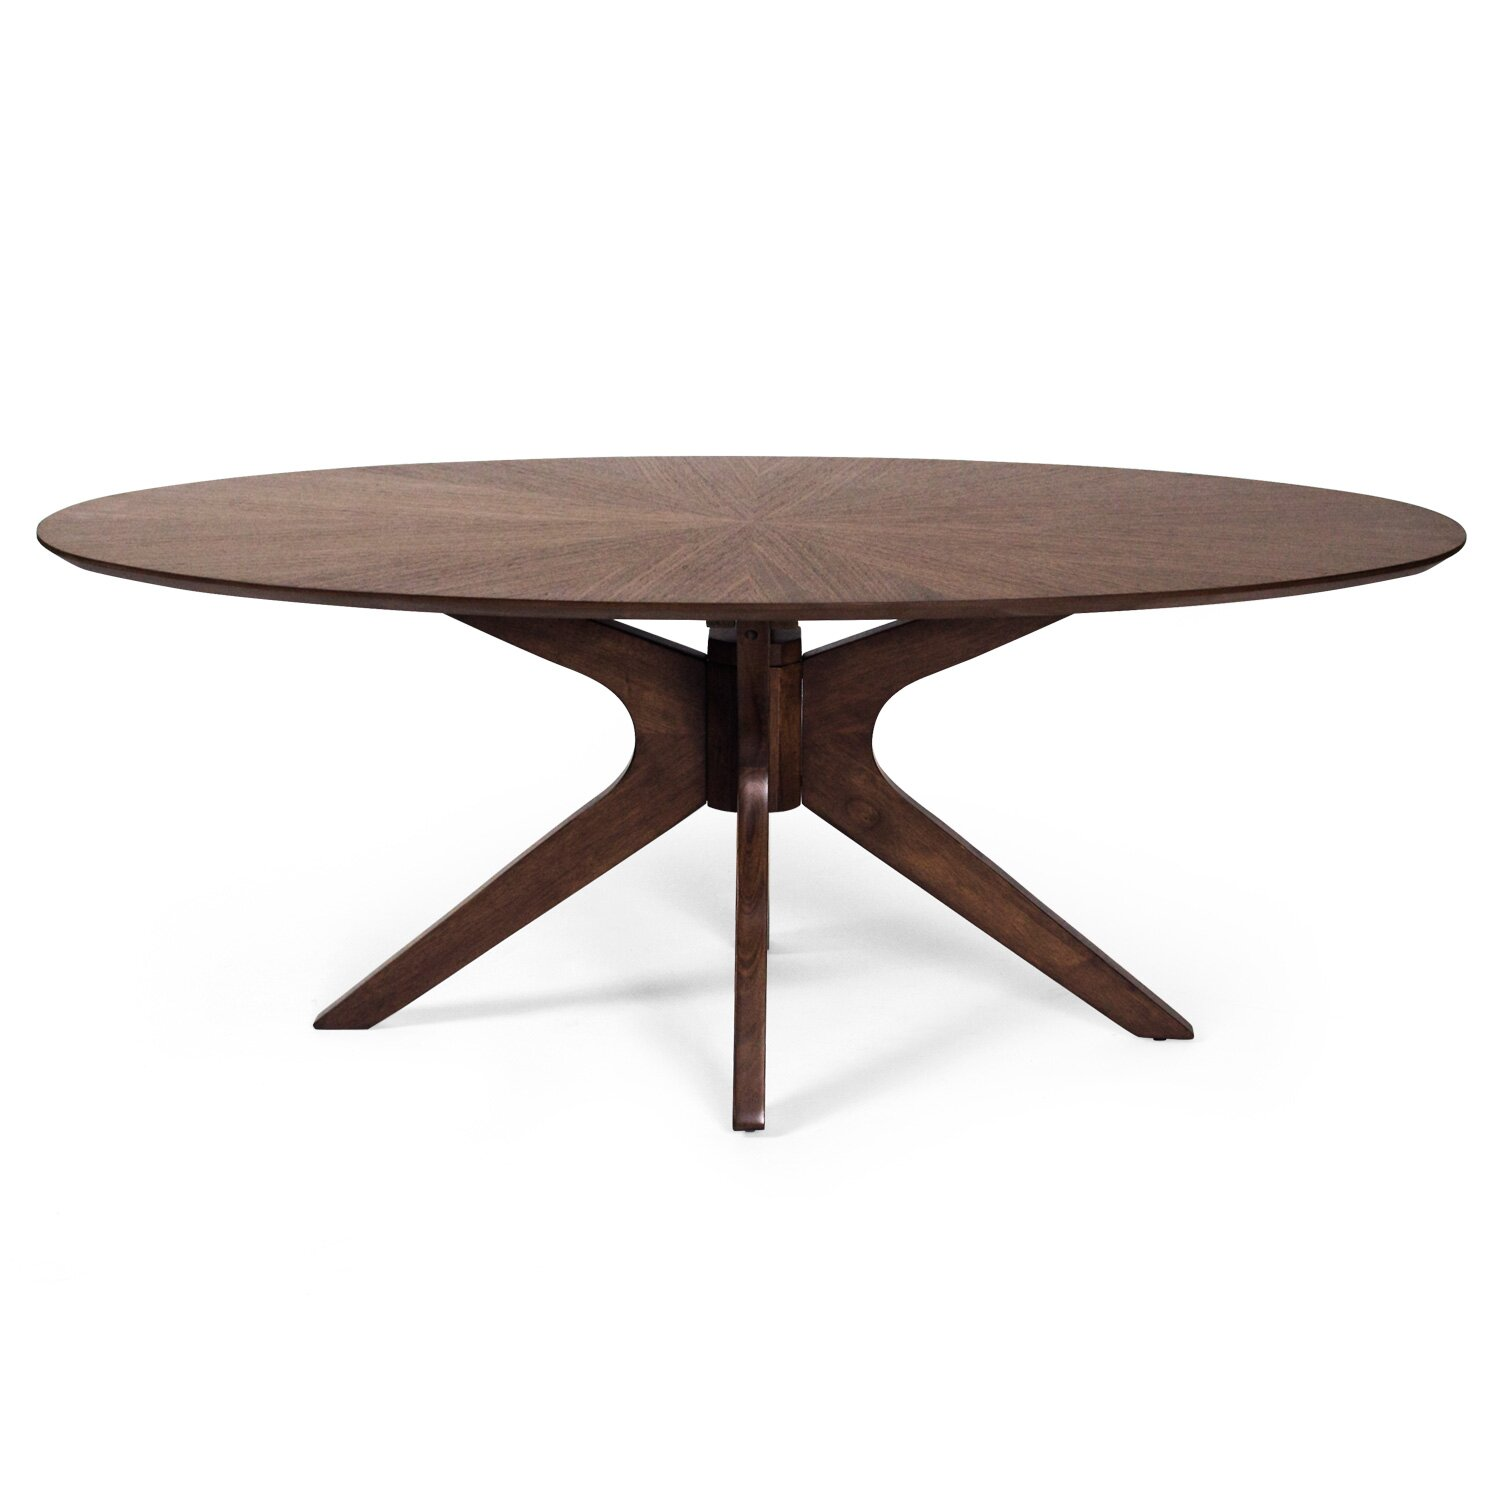 Round Dining Tables Uk Images Sideboard Decoration Ideas